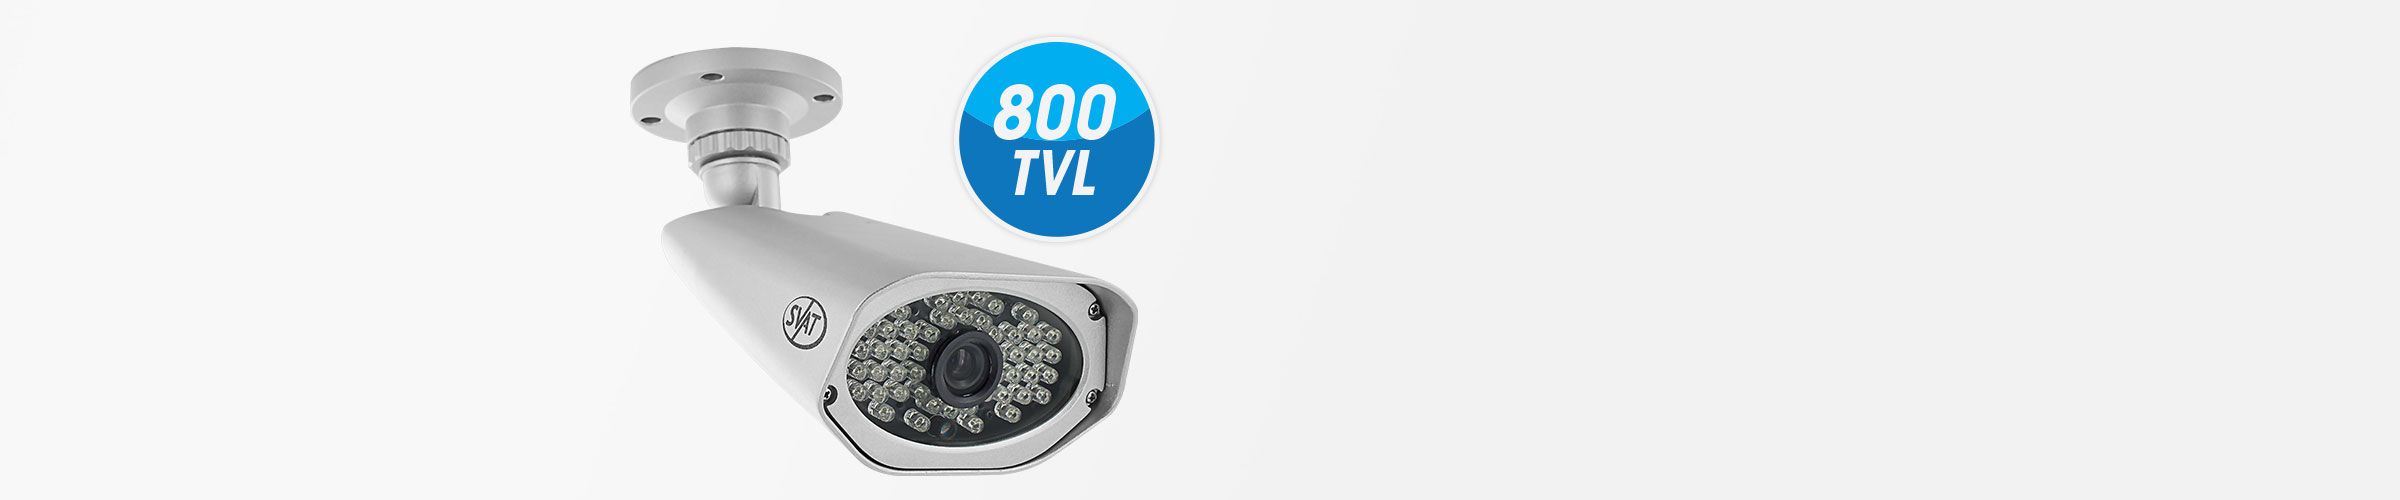 cameras included provide 800tvl for crisp smooth picture